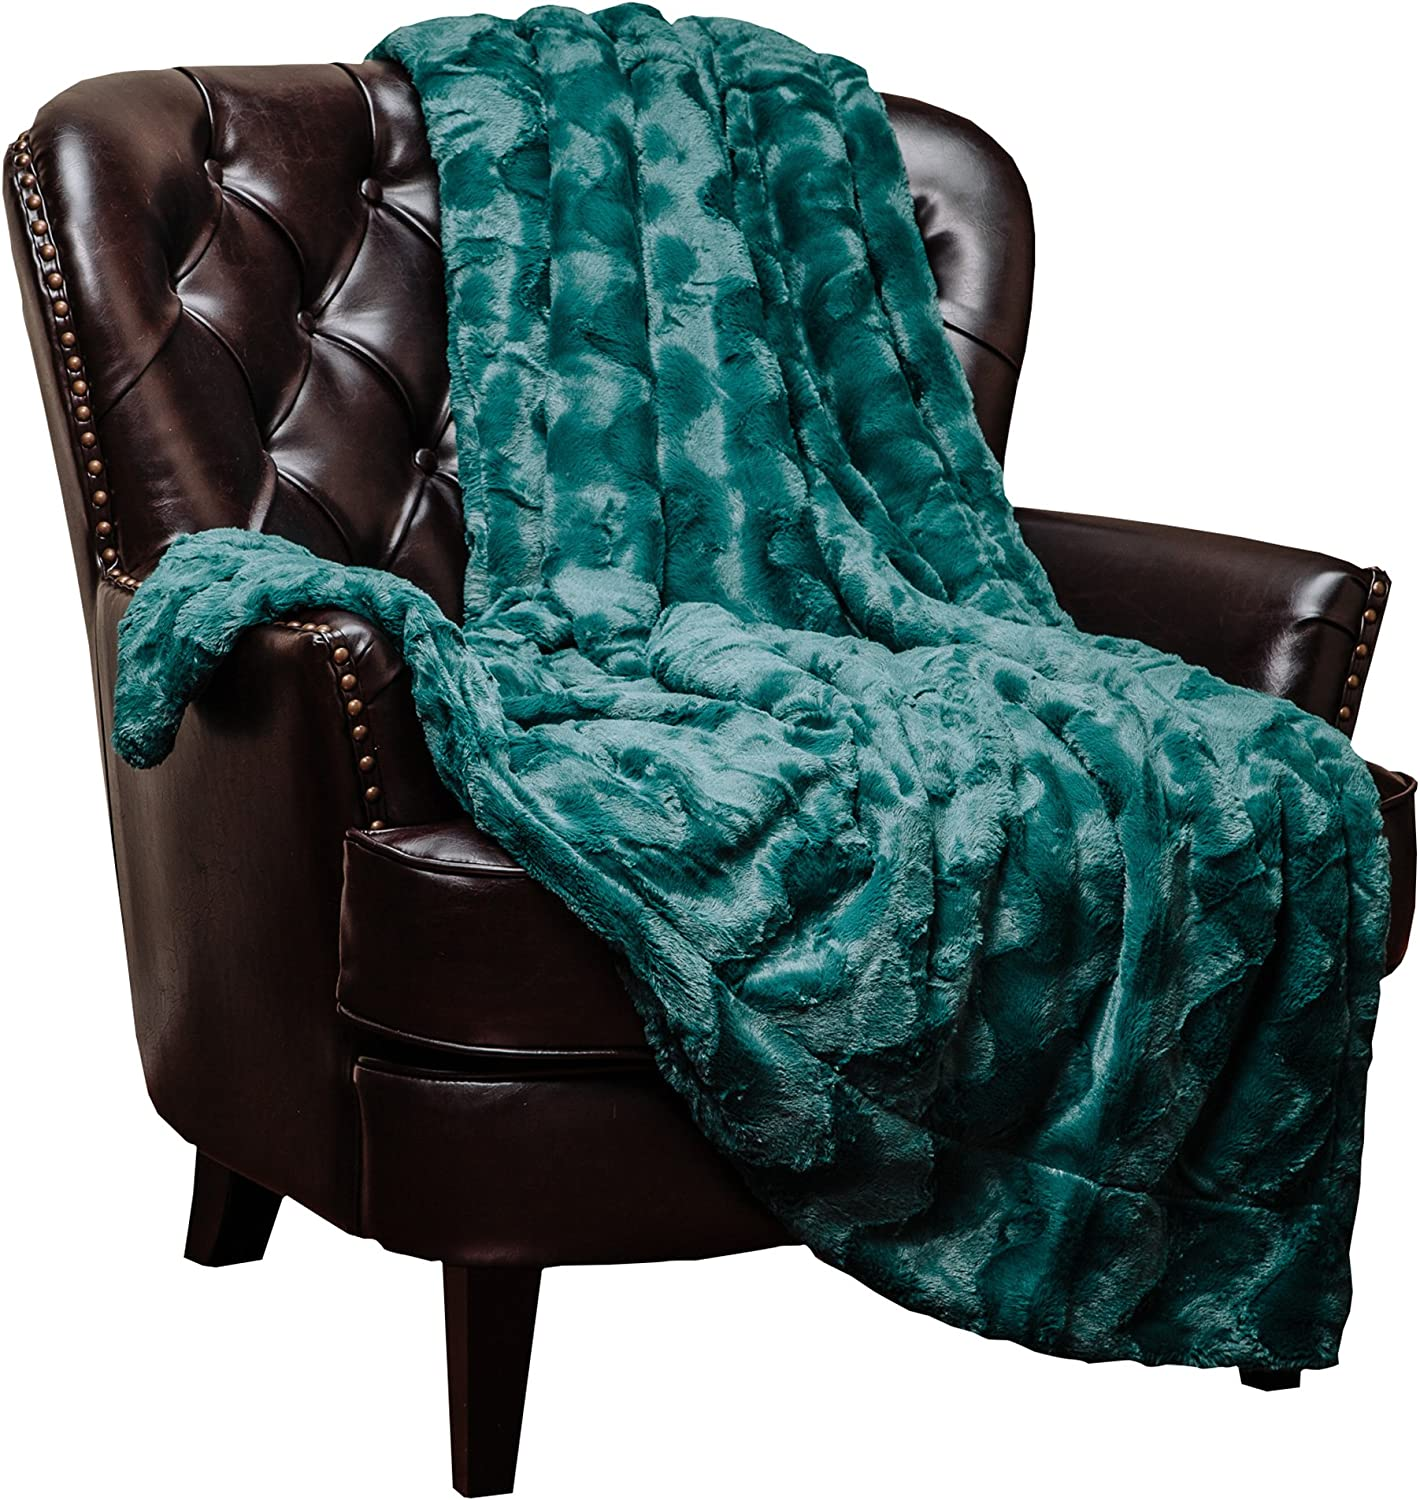 outlet Chanasya Fuzzy Faux Fur Soft Wave Cozy trend rank - Throw Embossed Blanket